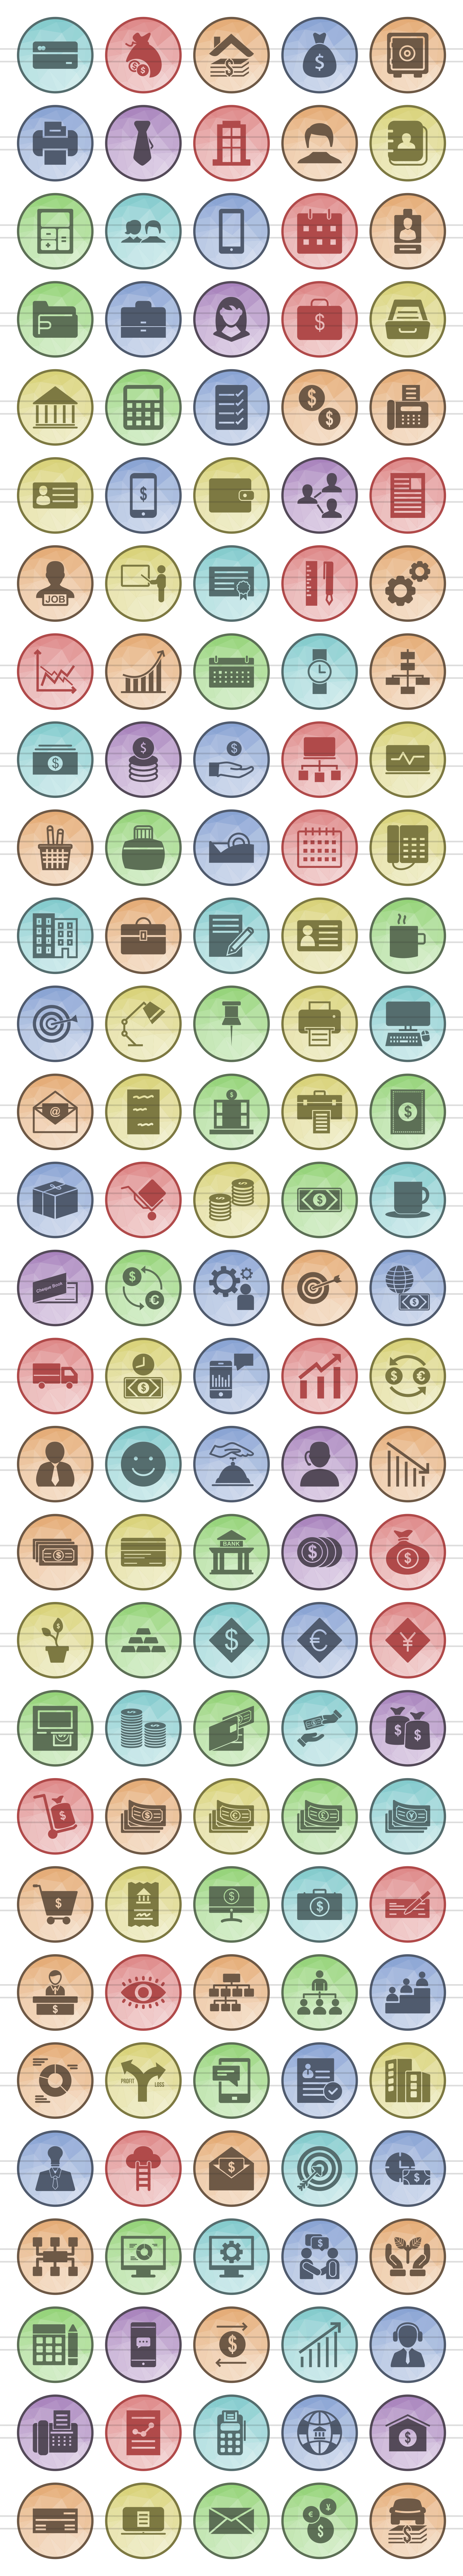 146 Business & Finance Filled Low Poly Icons example image 2